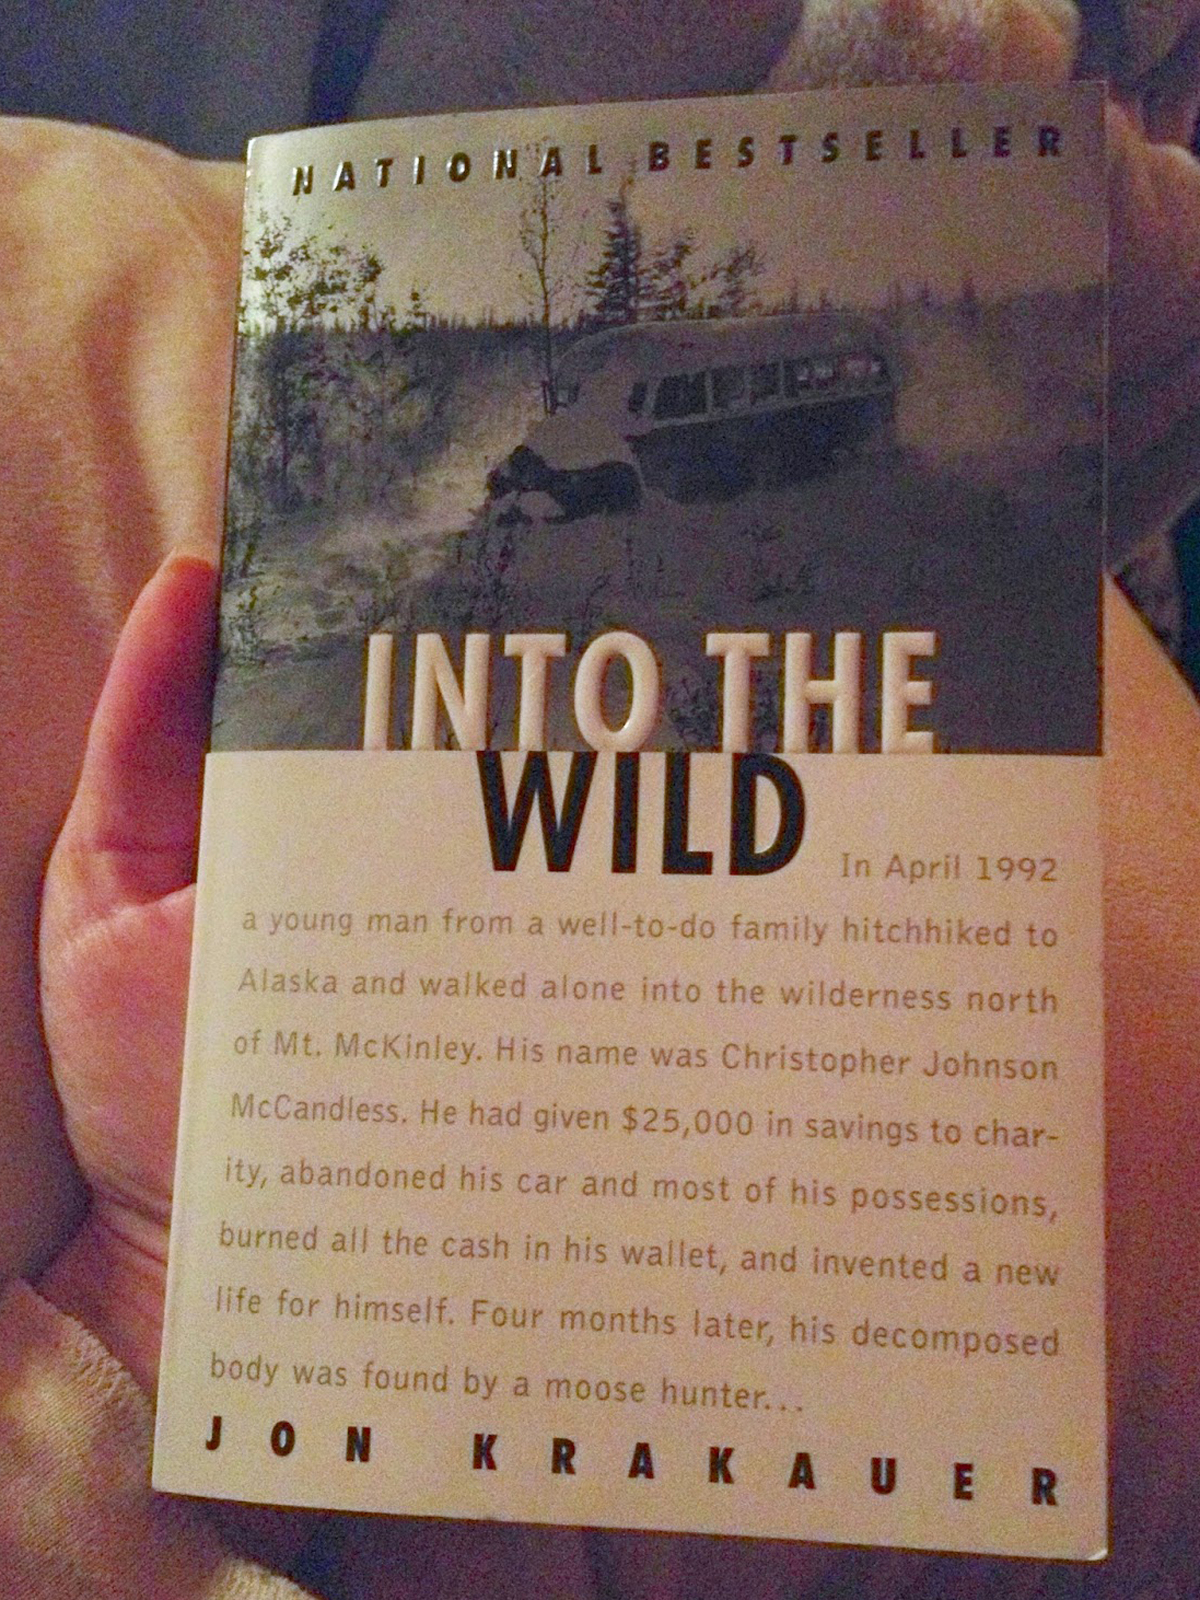 an obligation to family in into the wild by jon krakauer A summary of chapters 12 - 13 in jon krakauer's into the wild learn exactly what happened in this chapter, scene, or section of into the wild and what it means.